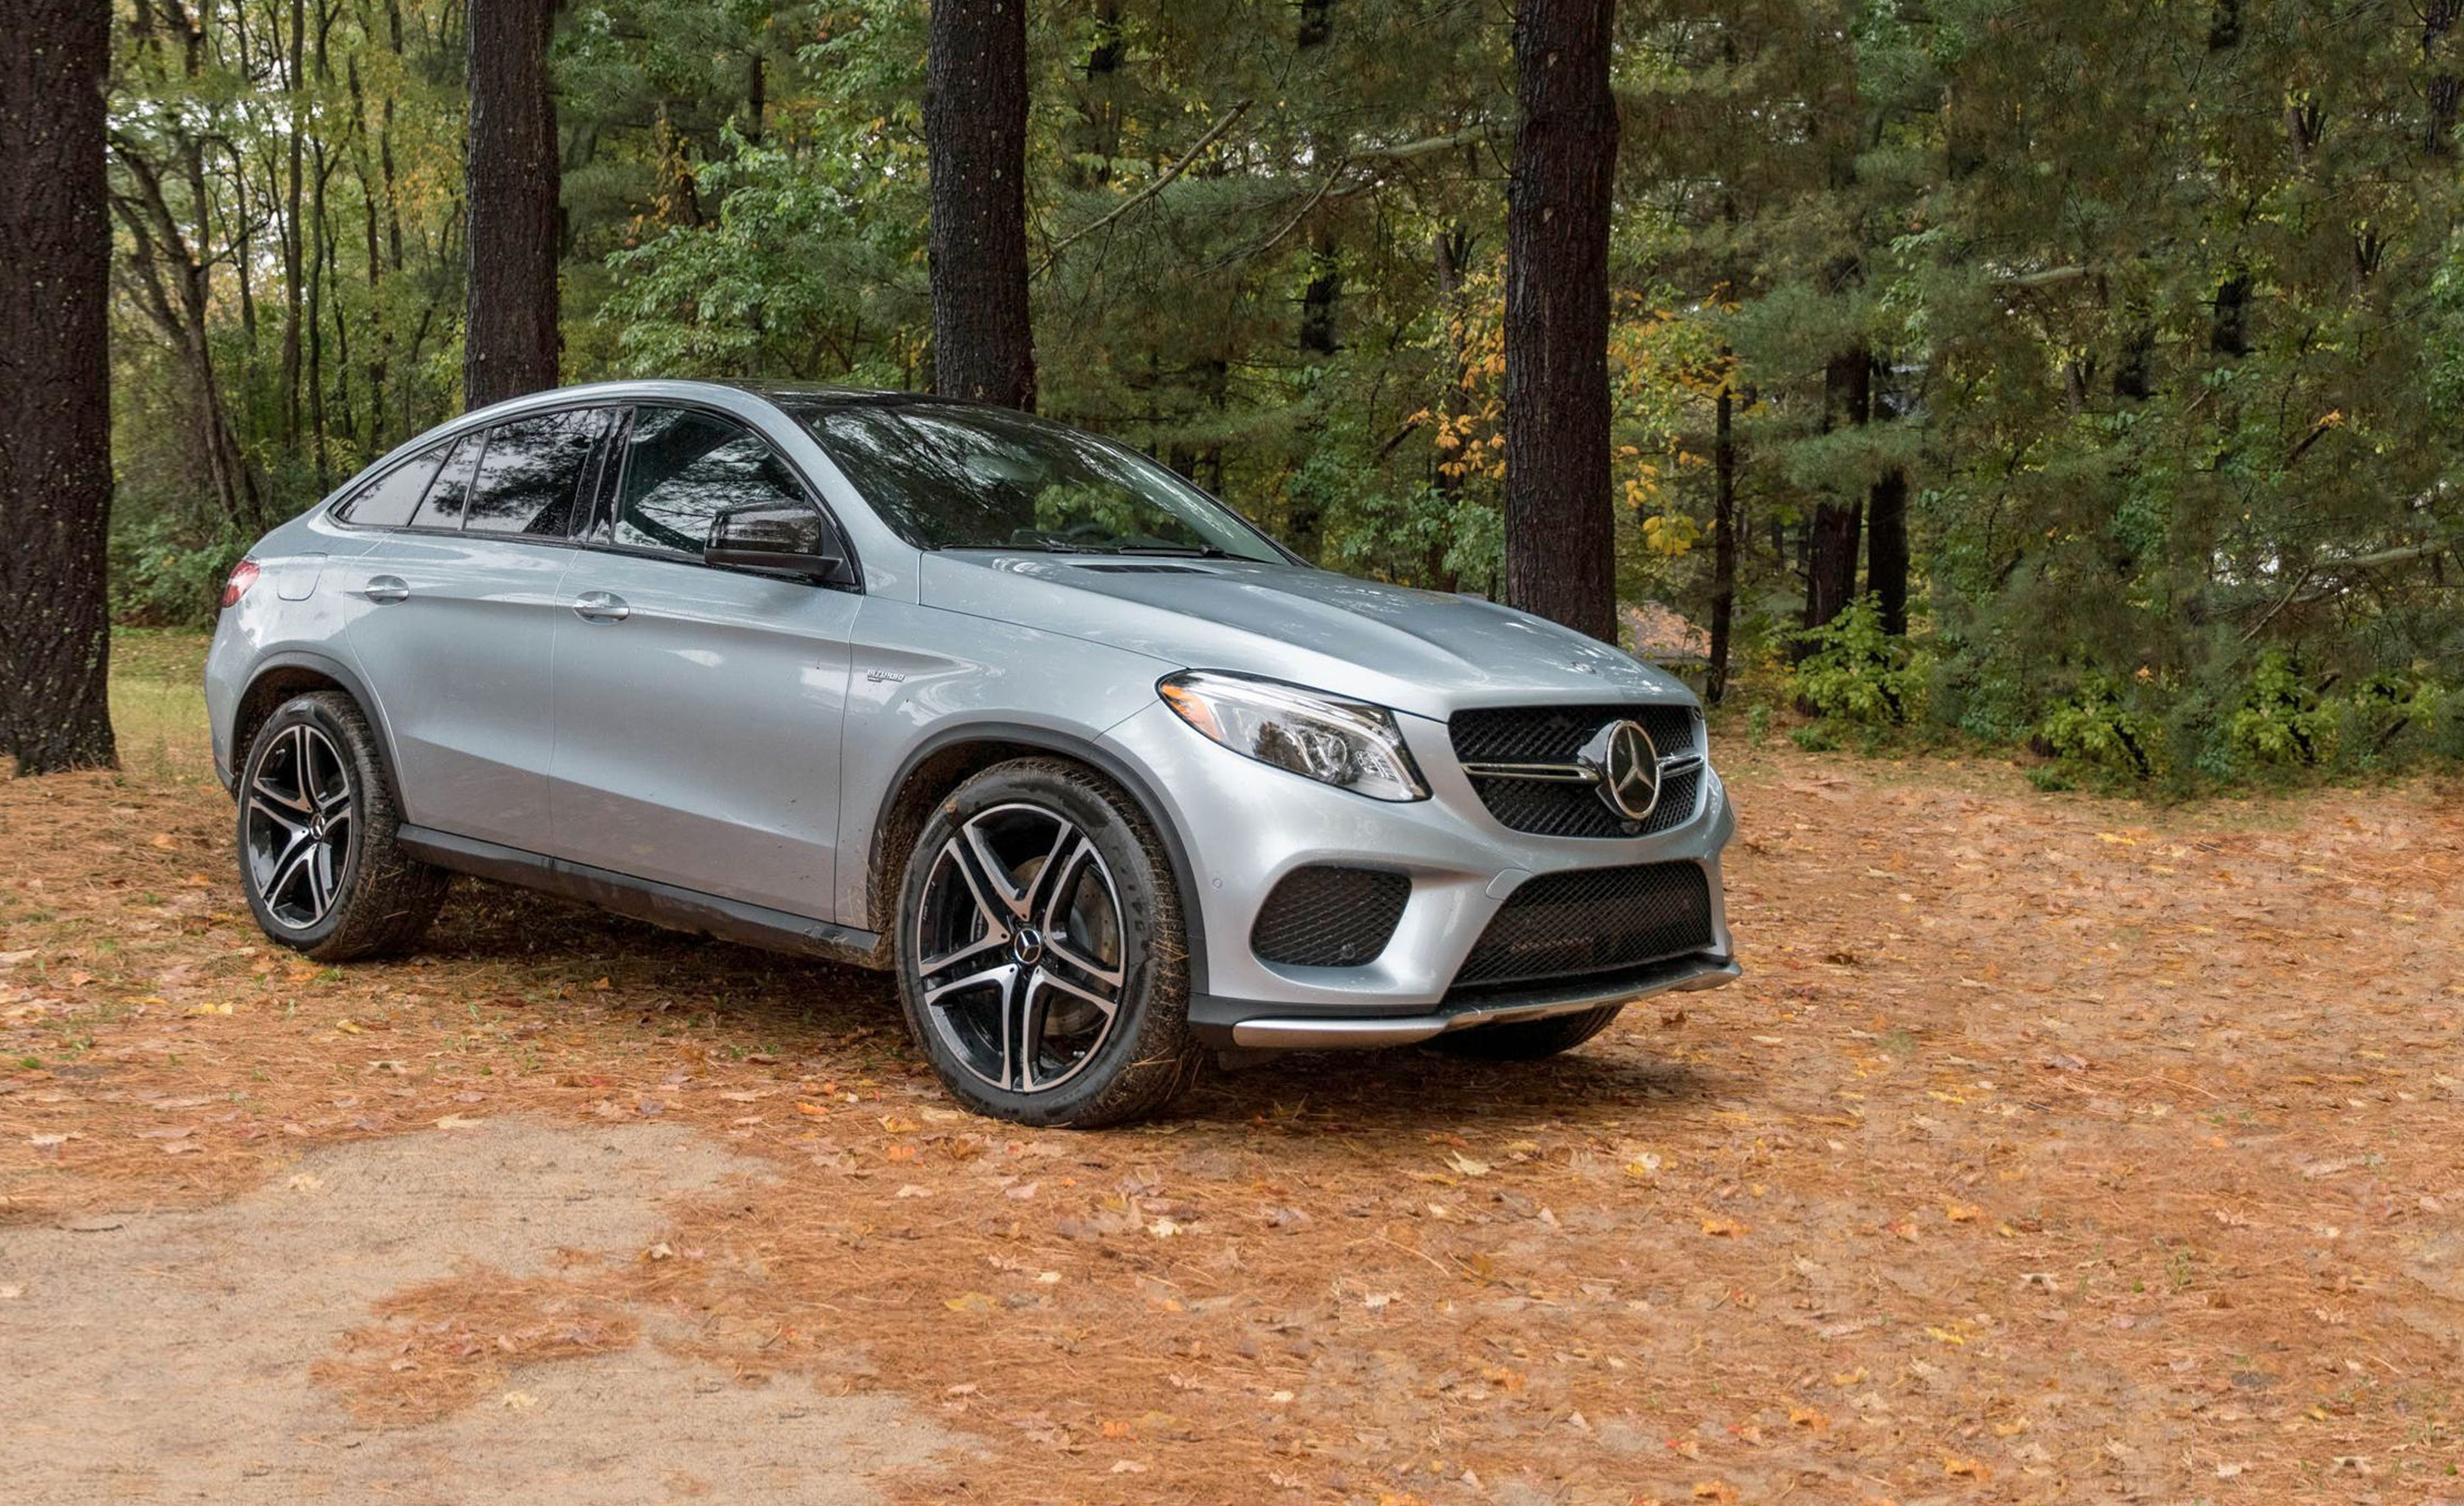 2019 Mercedes Amg Gle43 Coupe Gle63 S Coupe Review Pricing And Specs